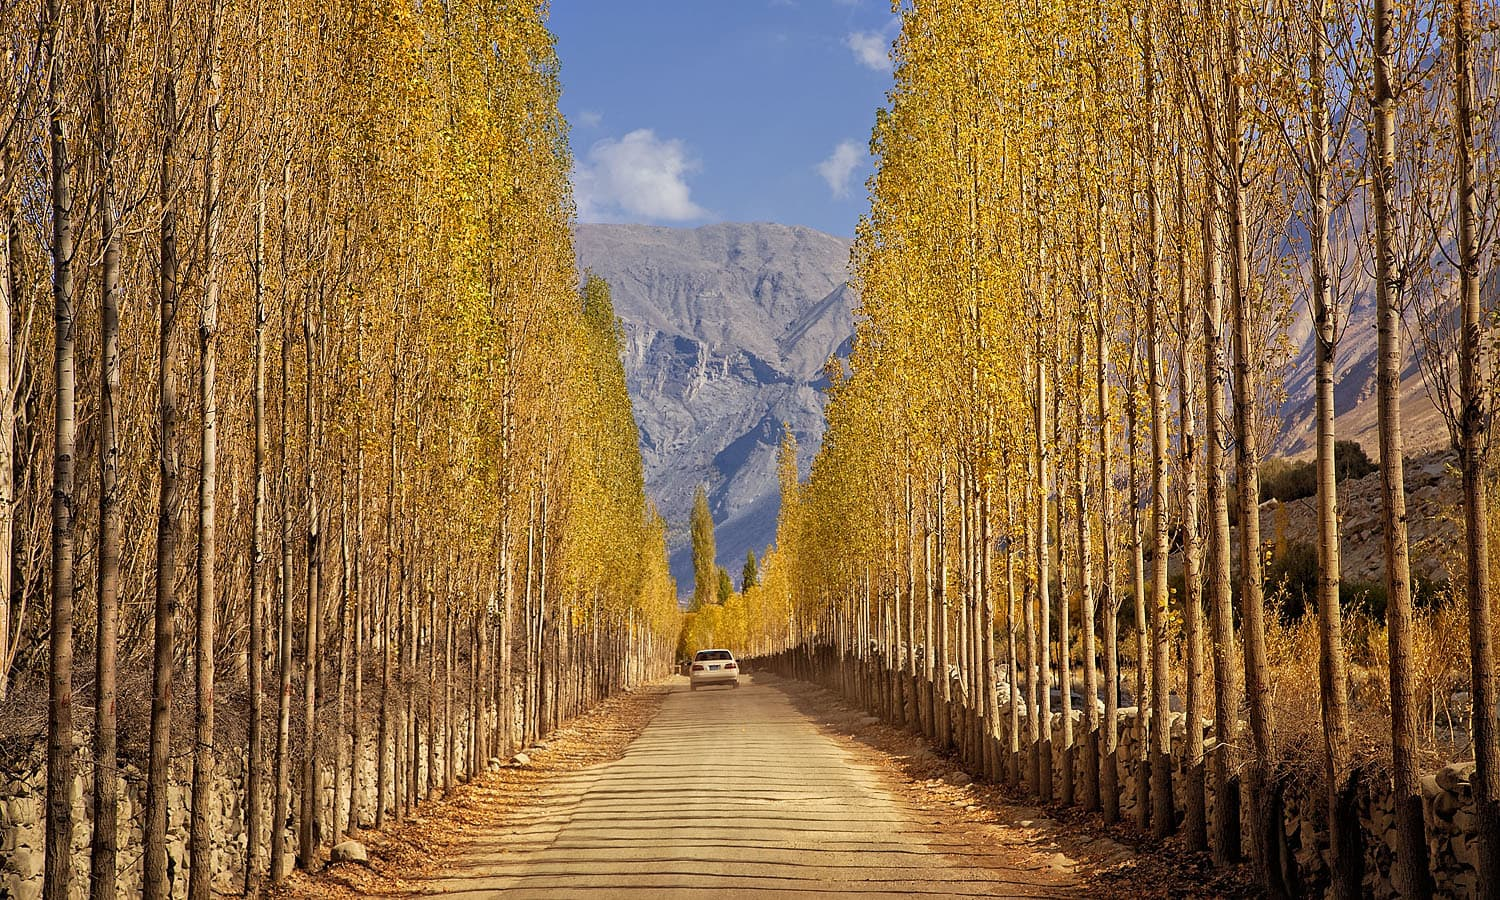 Road to Khaplu. — S.M.Bukhari